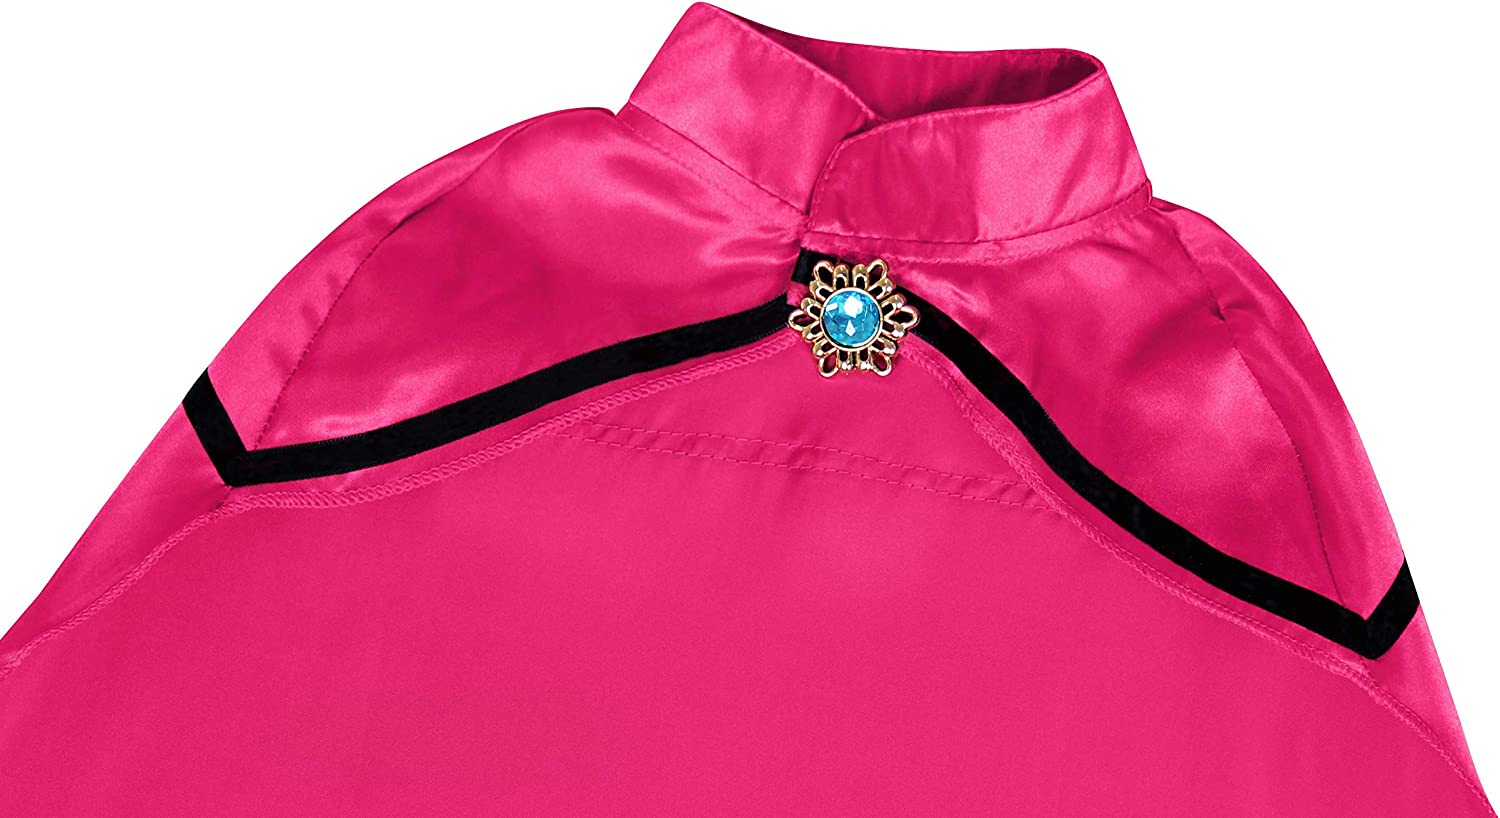 AmzBarley Girls Princess Coronation Dress Halloween Party Costume Dress up Long Sleeve Winter Outfits with Cape